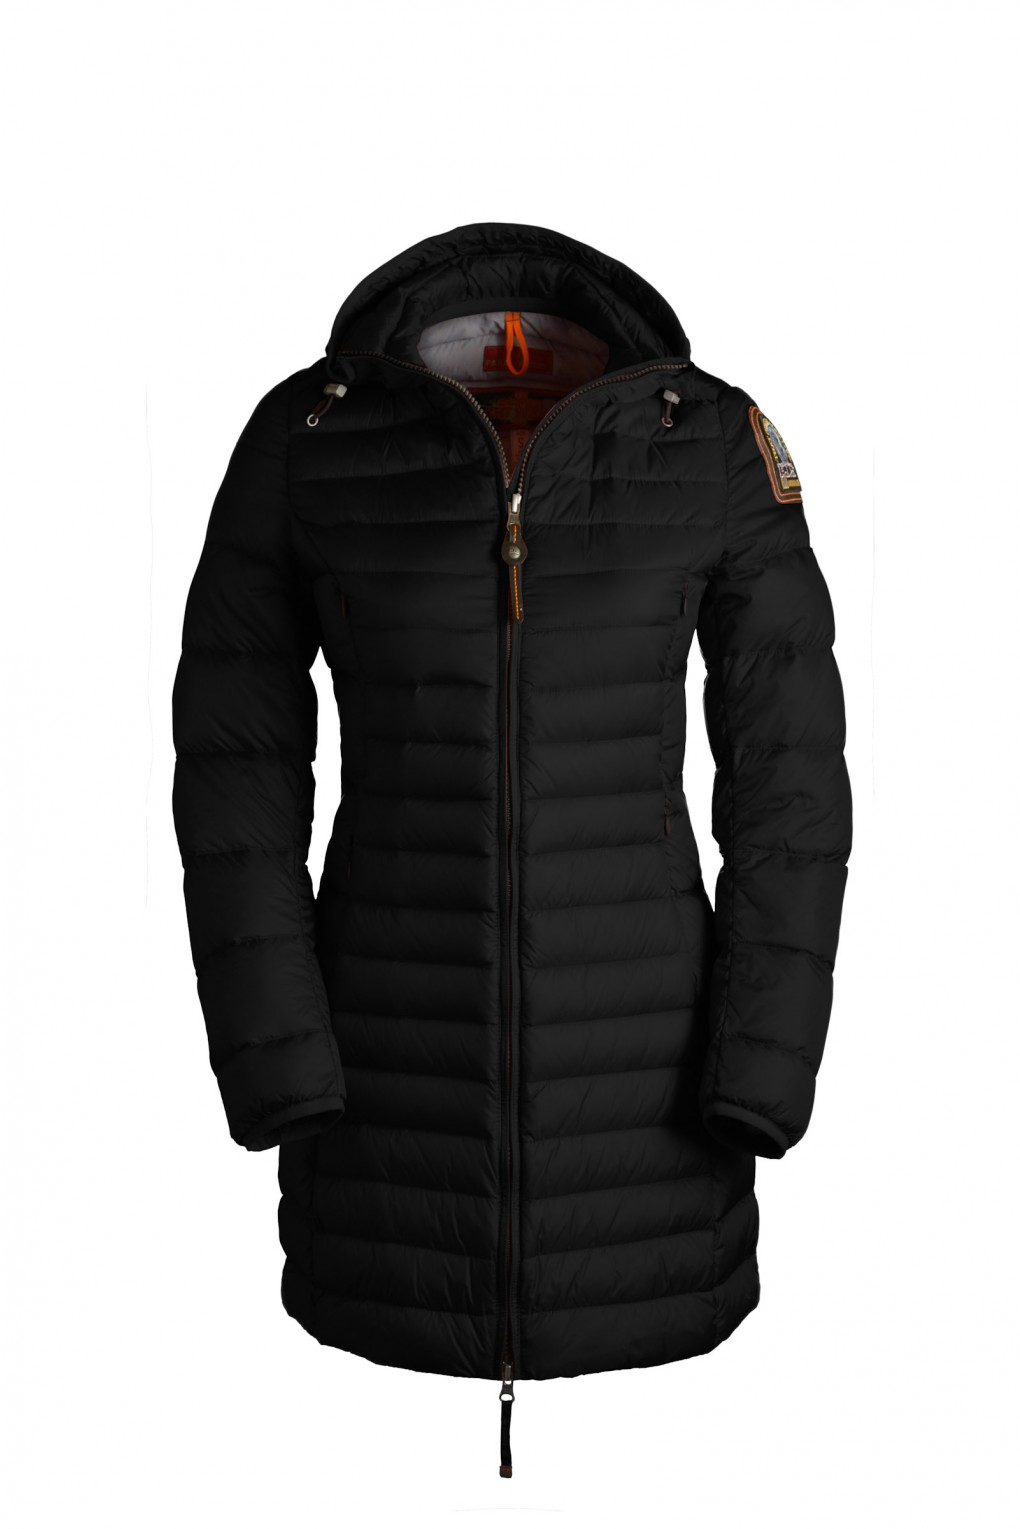 parajumpers IRENE6 woman outerwear Black